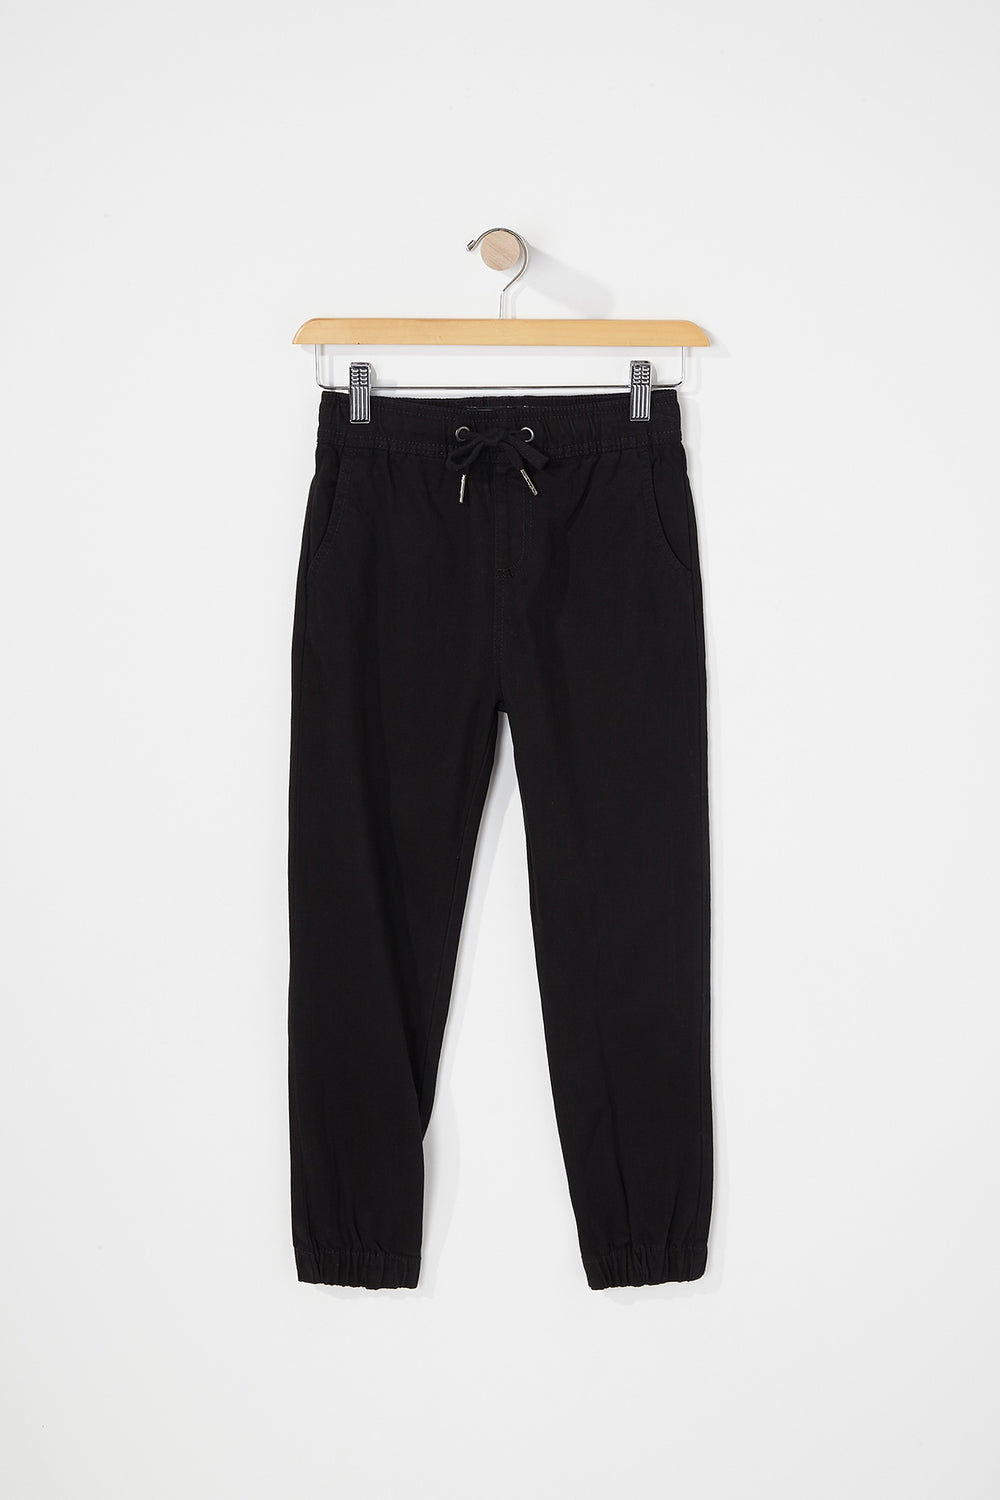 West49 Boys Basic Jogger Black